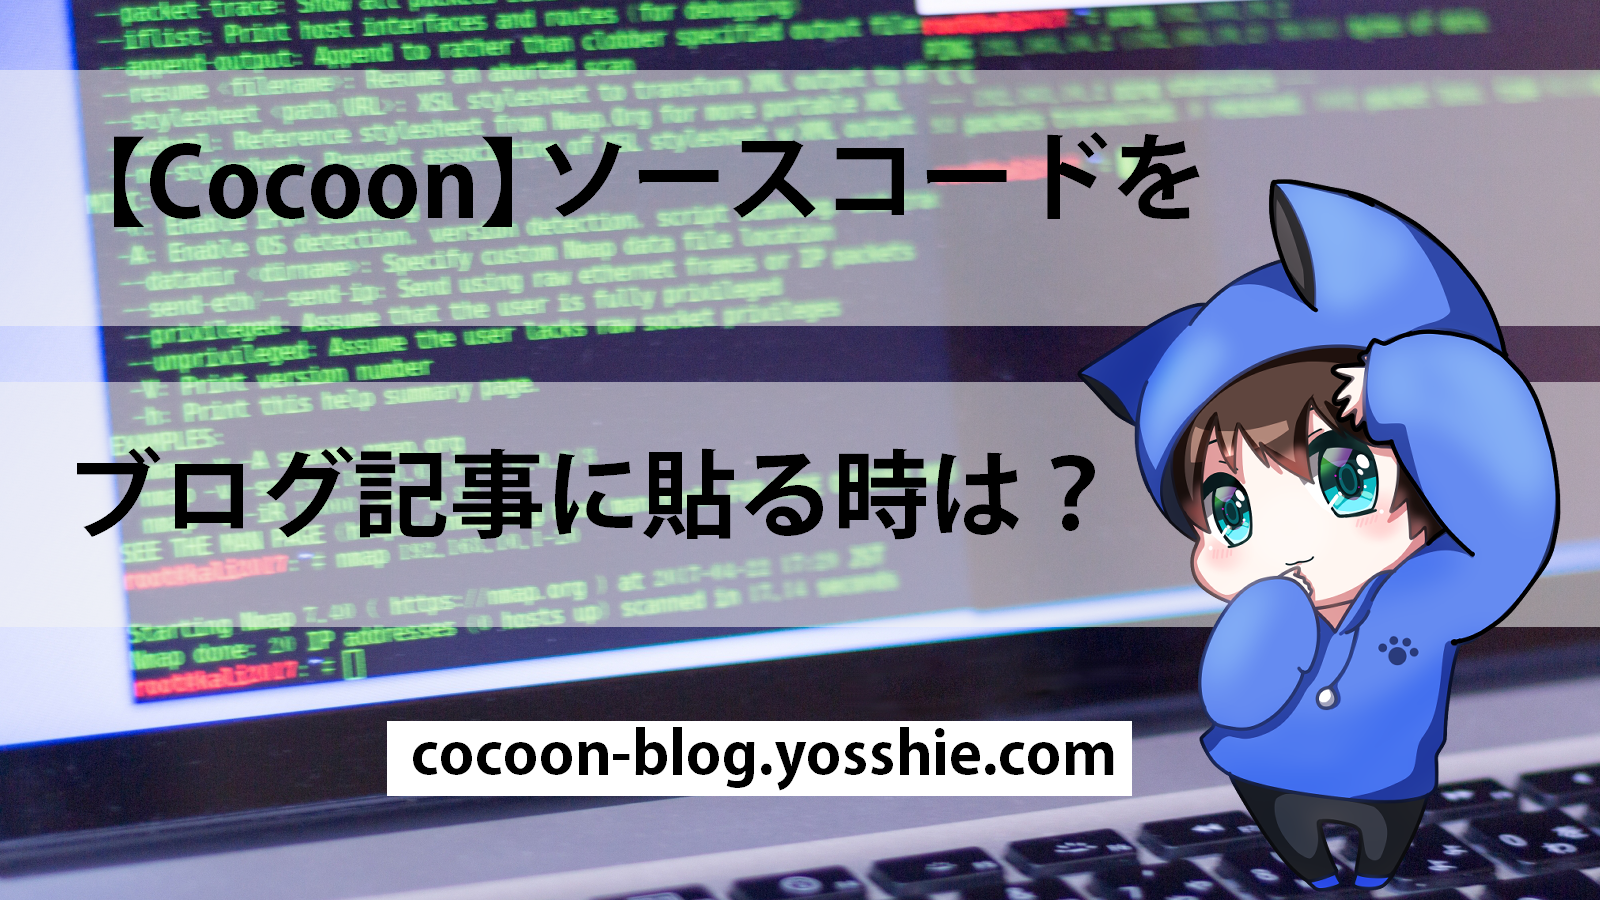 Cocoonでソースコードを貼る方法